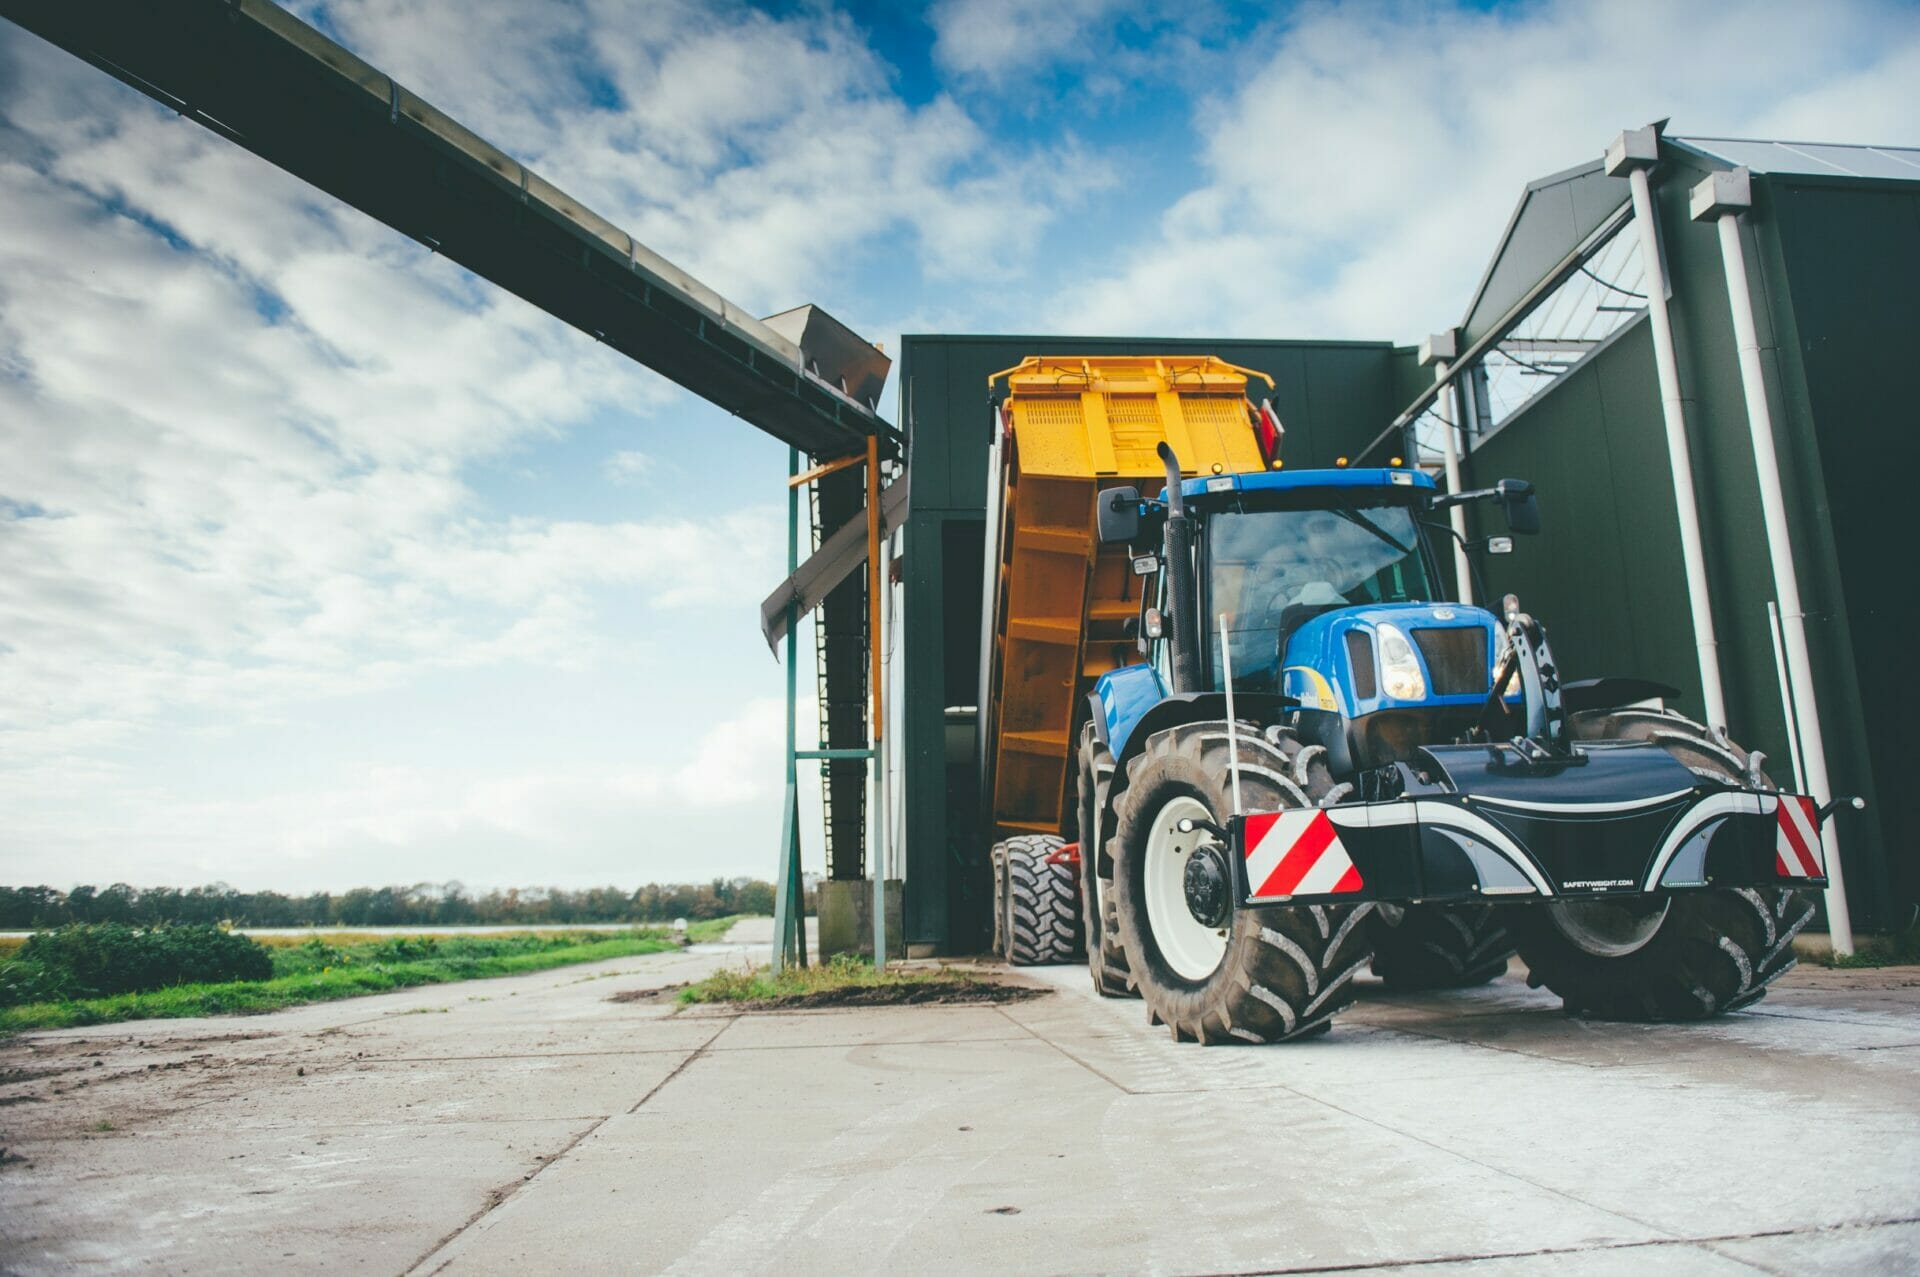 tractorbumper | for our safety